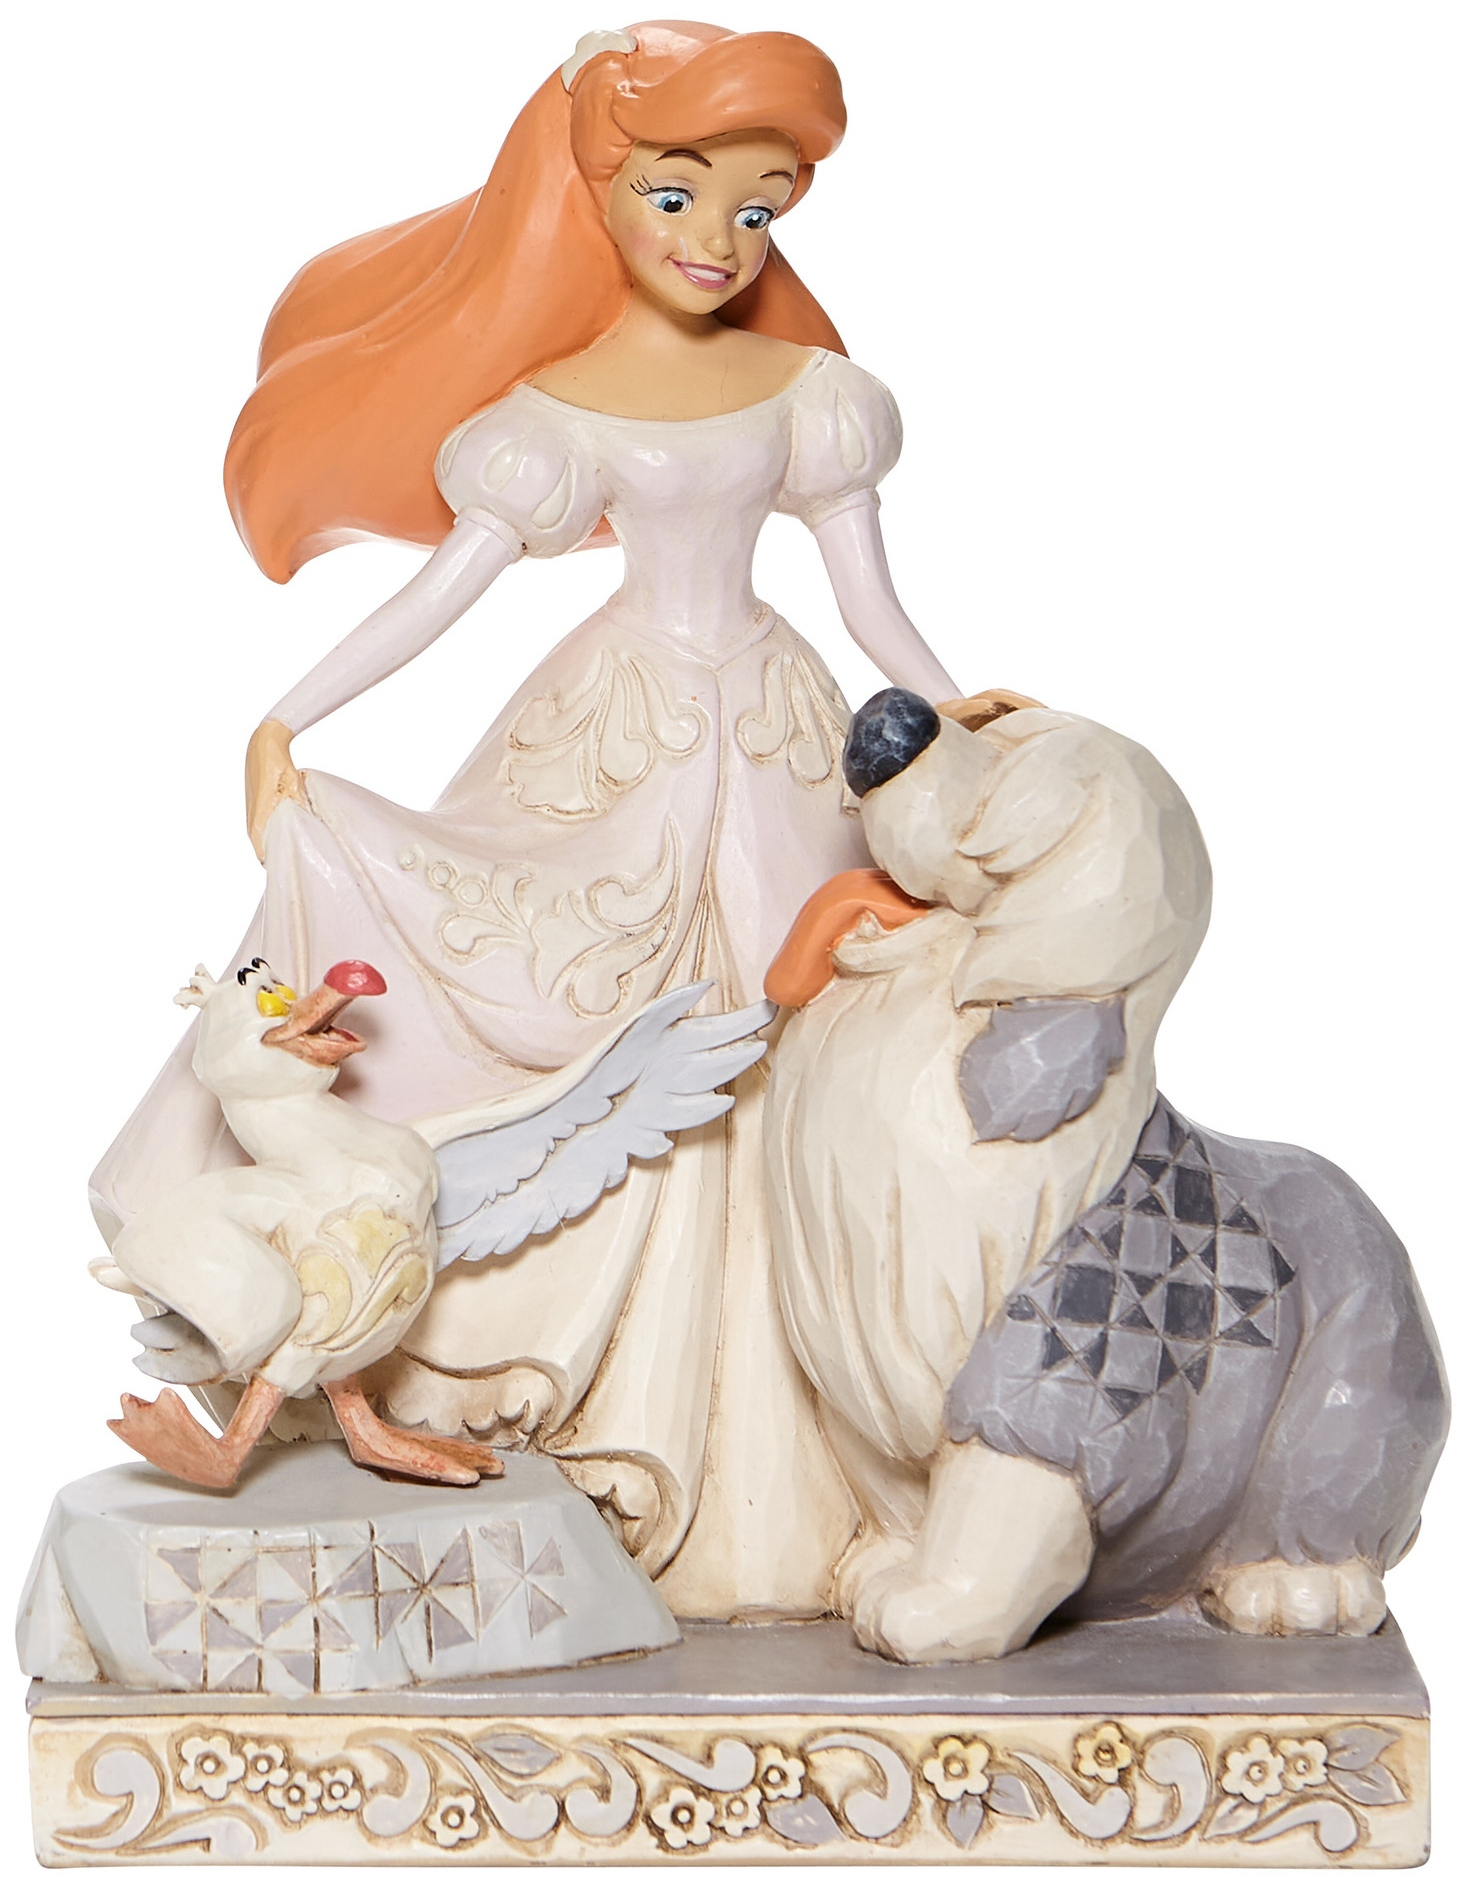 Disney Traditions by Jim Shore 6008066 White Woodland Ariel Figurine